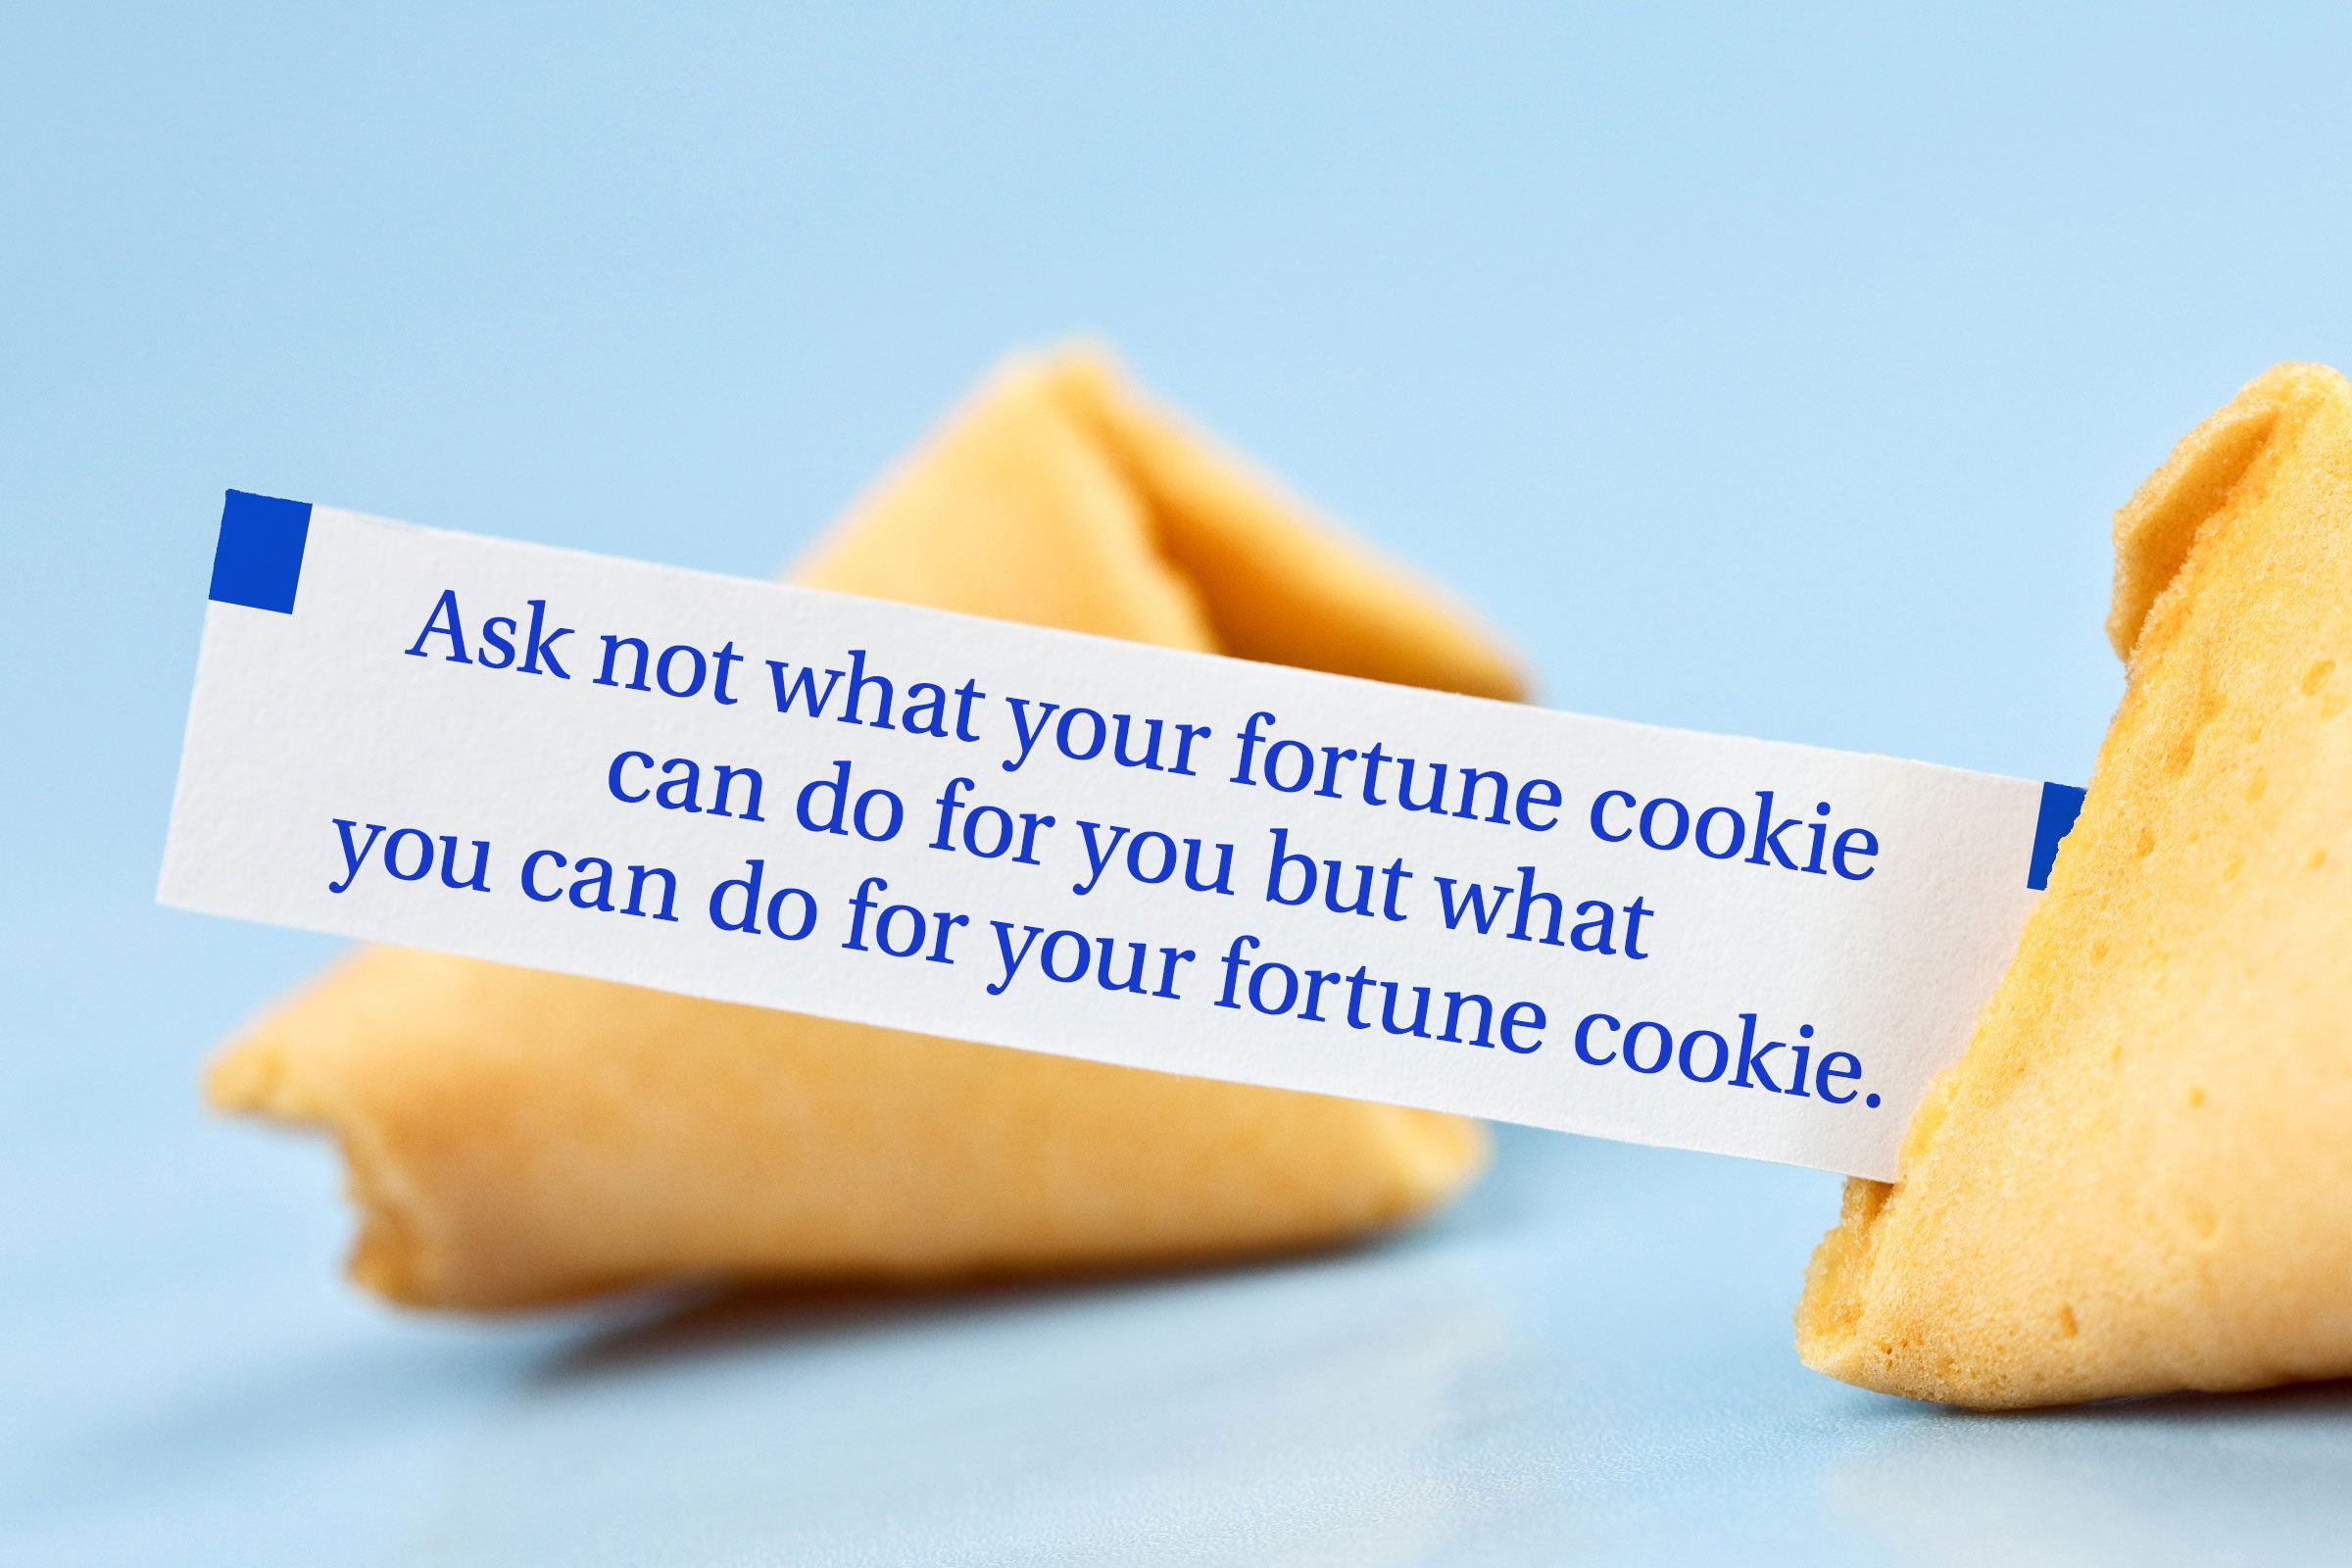 For image: Ask not what your fortune cookie can do for you but what you can do for your fortune cookie.